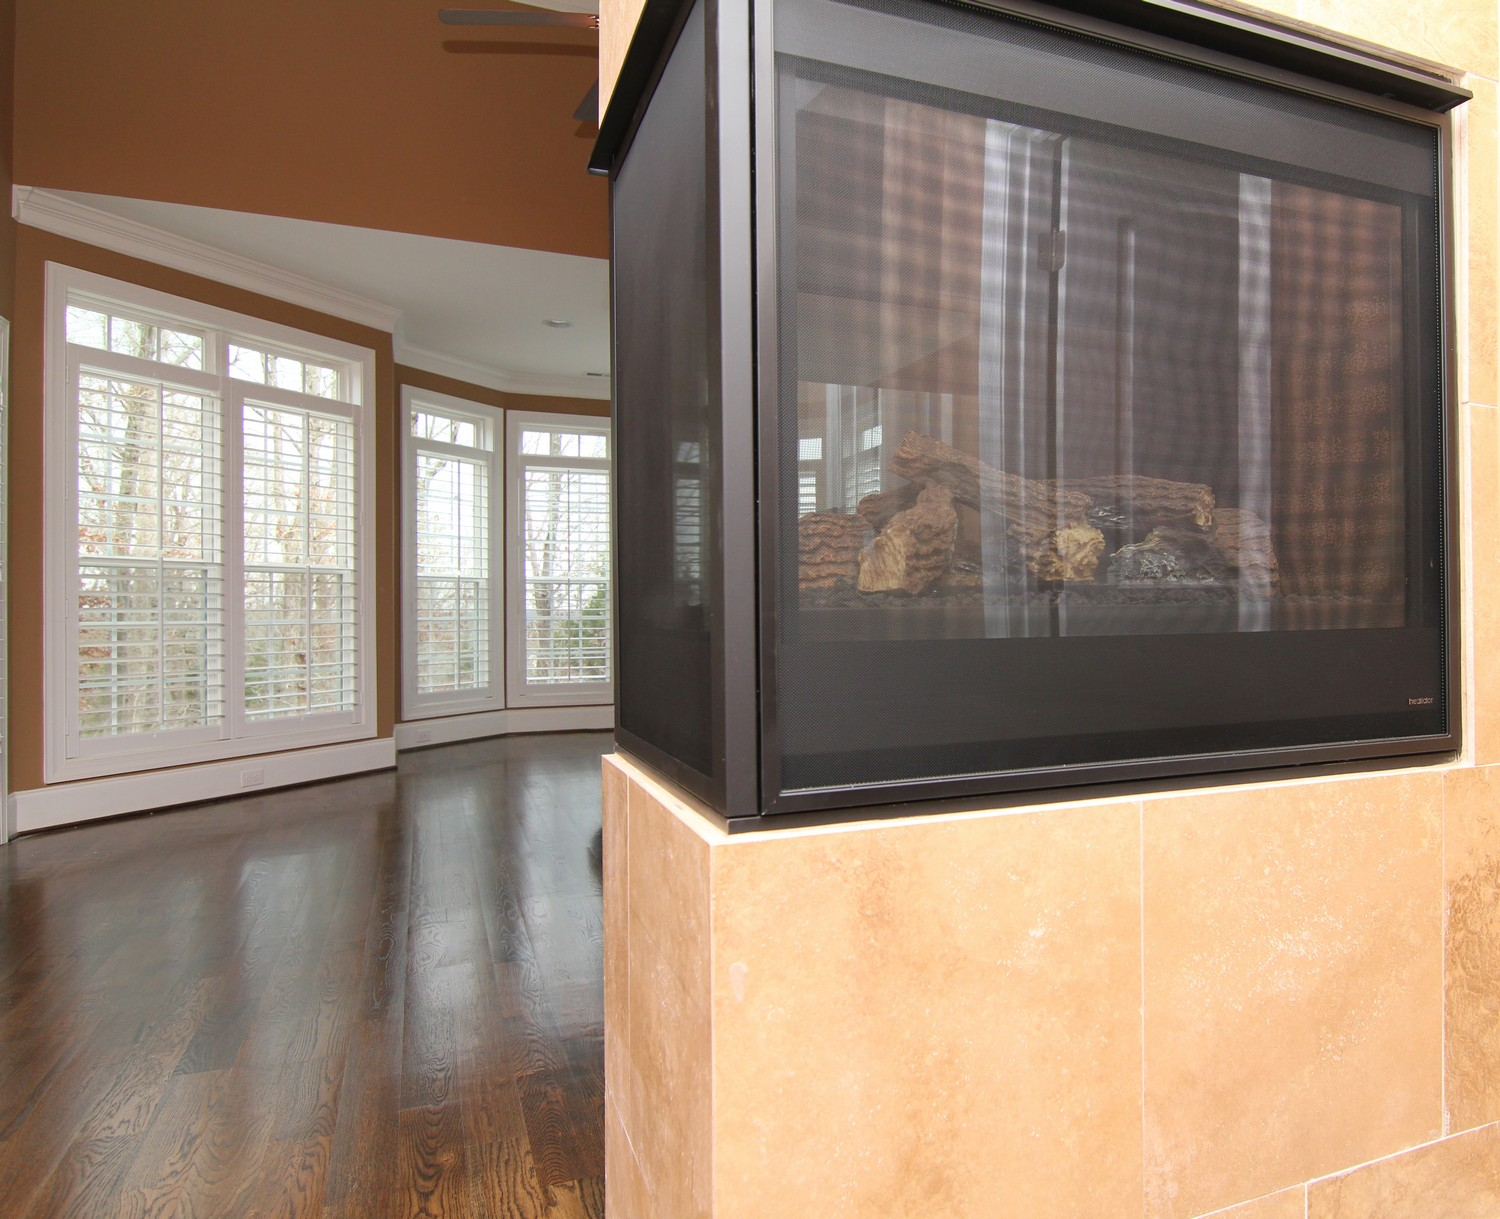 RemingtonMasterFireplace2